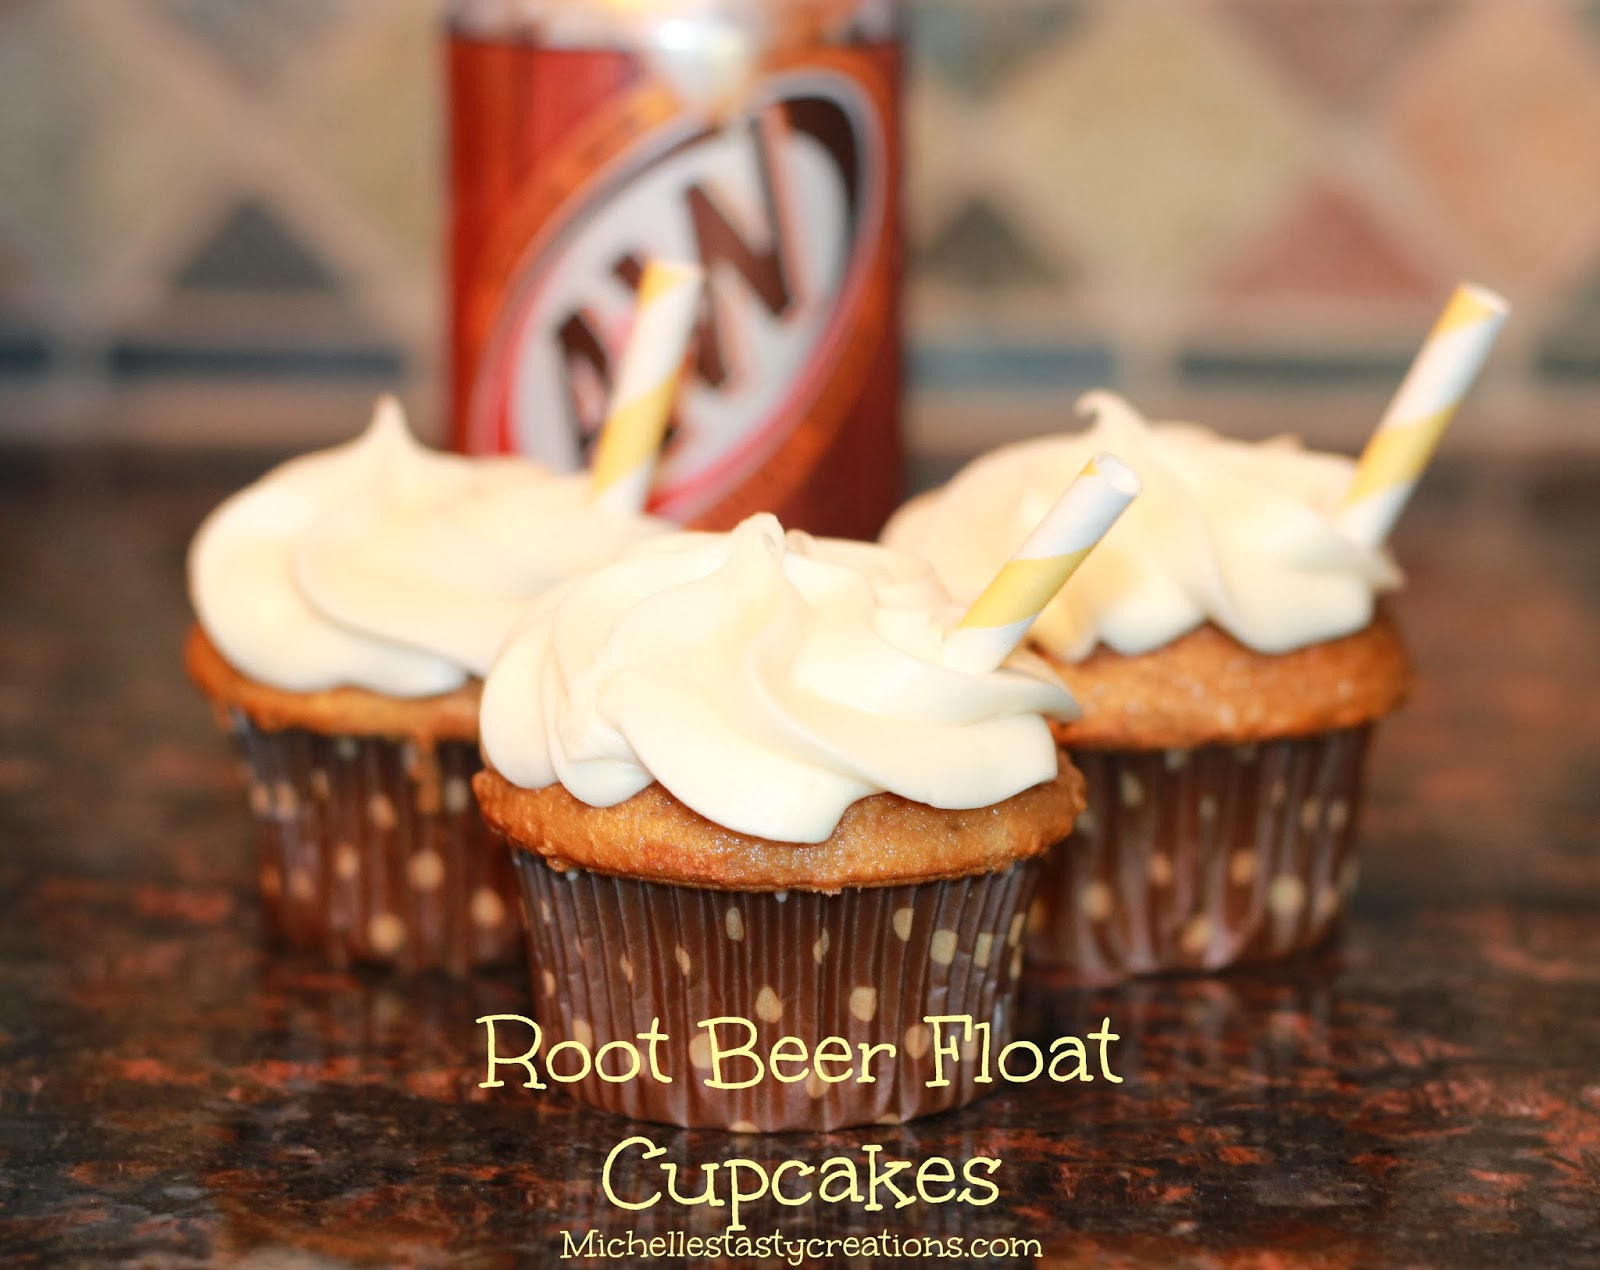 Michelle's Tasty Creations: Root Beer Float Cupcakes